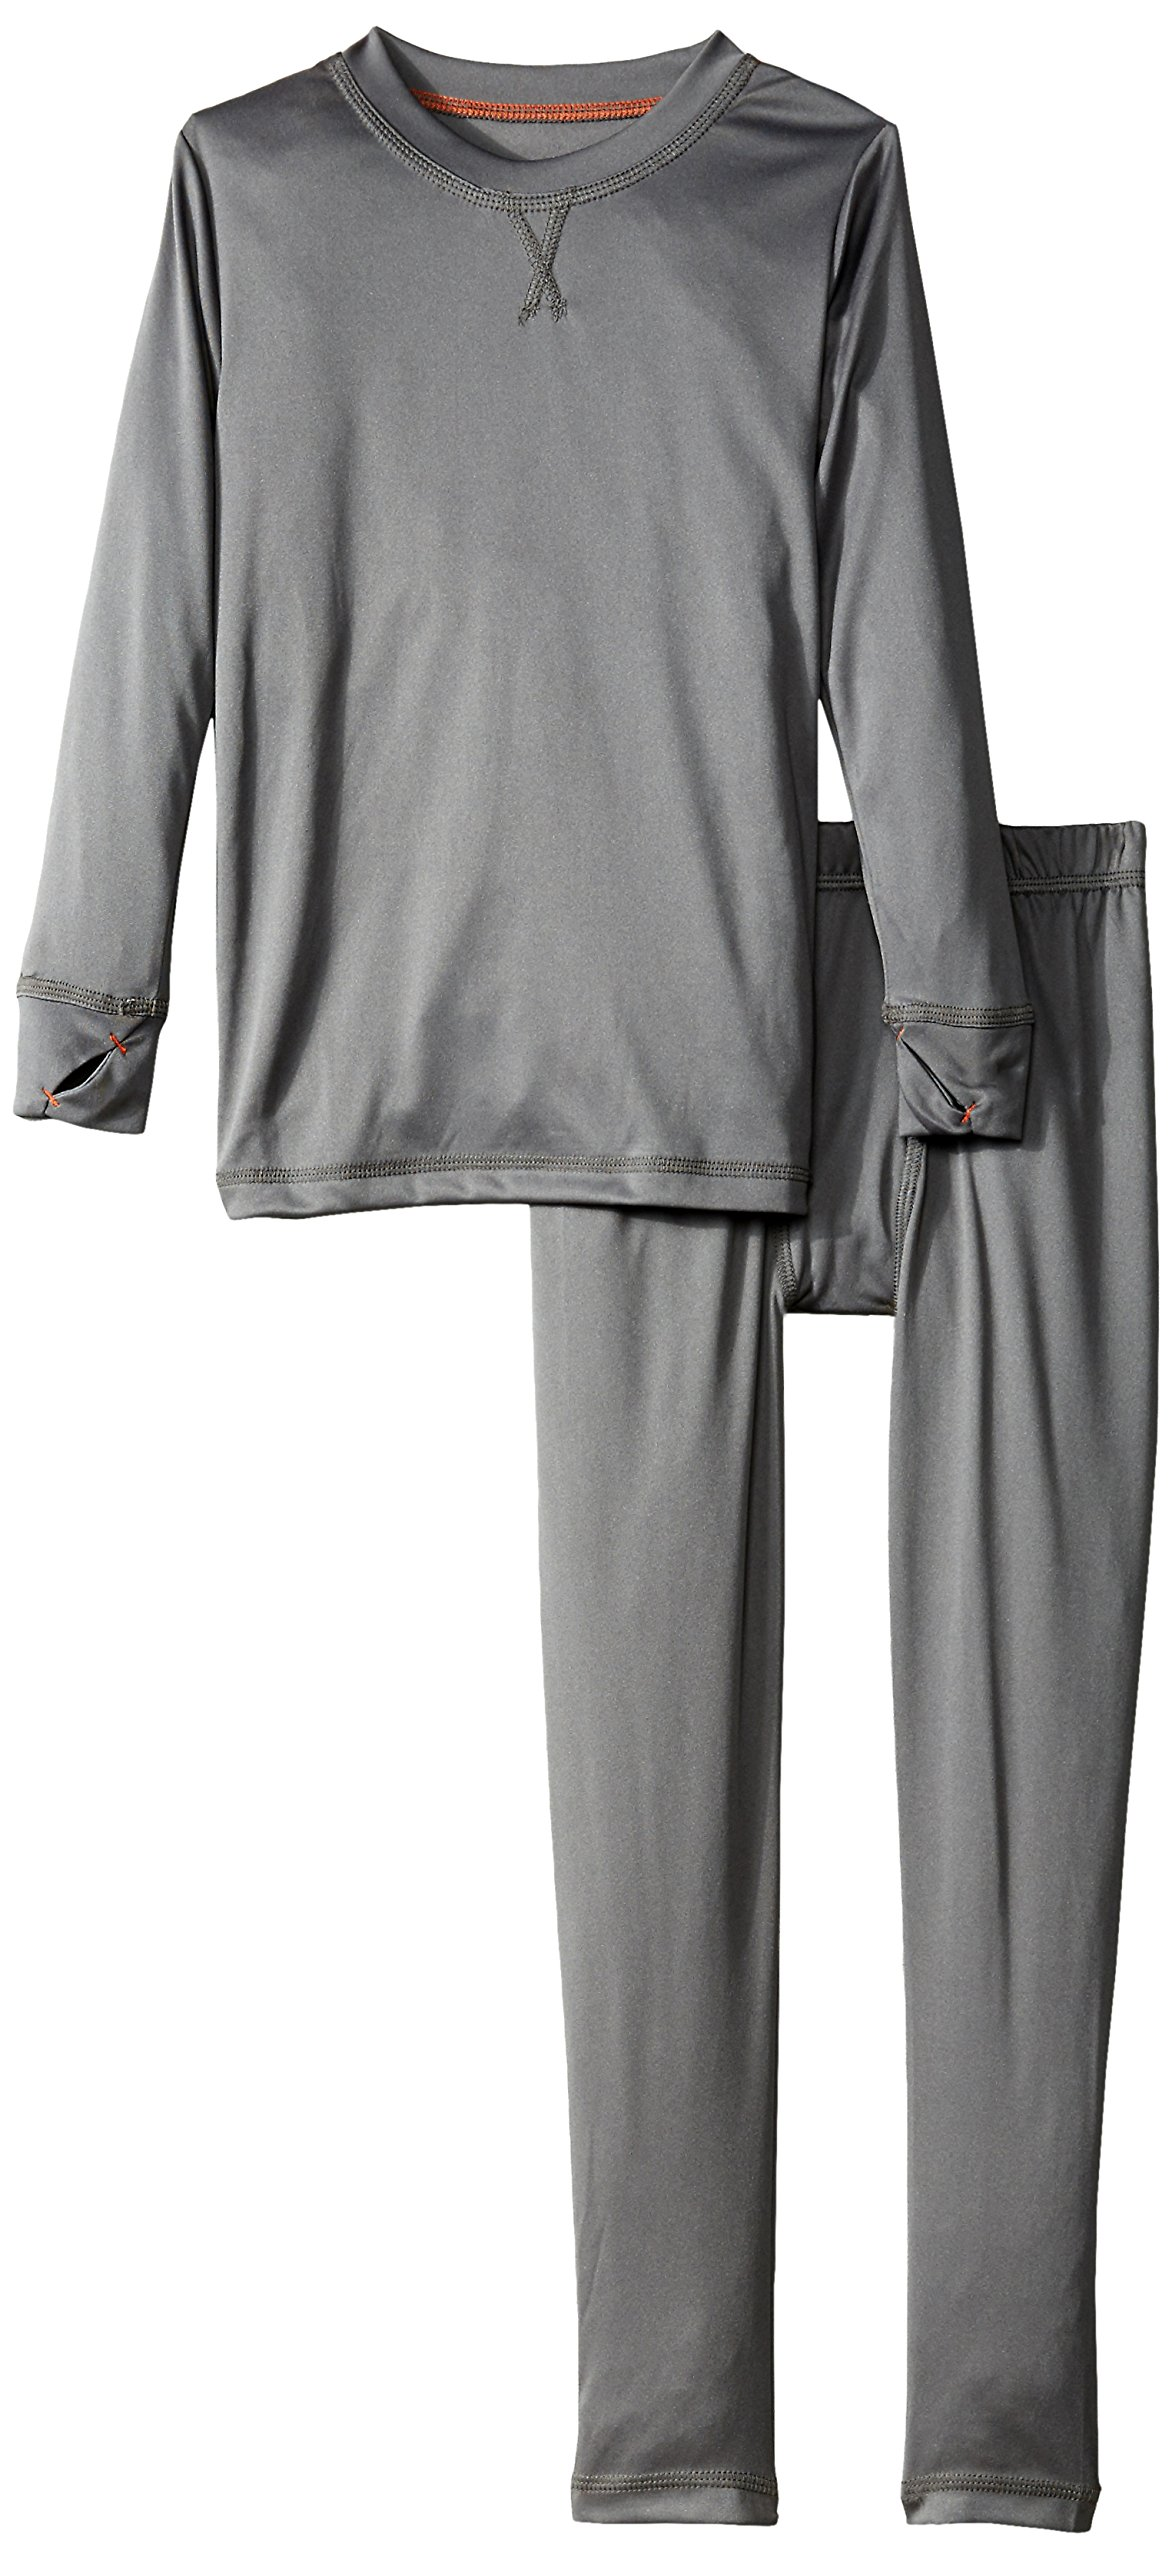 Cuddl Duds Boys' Big Climate Smart Essential Poly Two-Piece Thermal Set, Gray Solid, Small